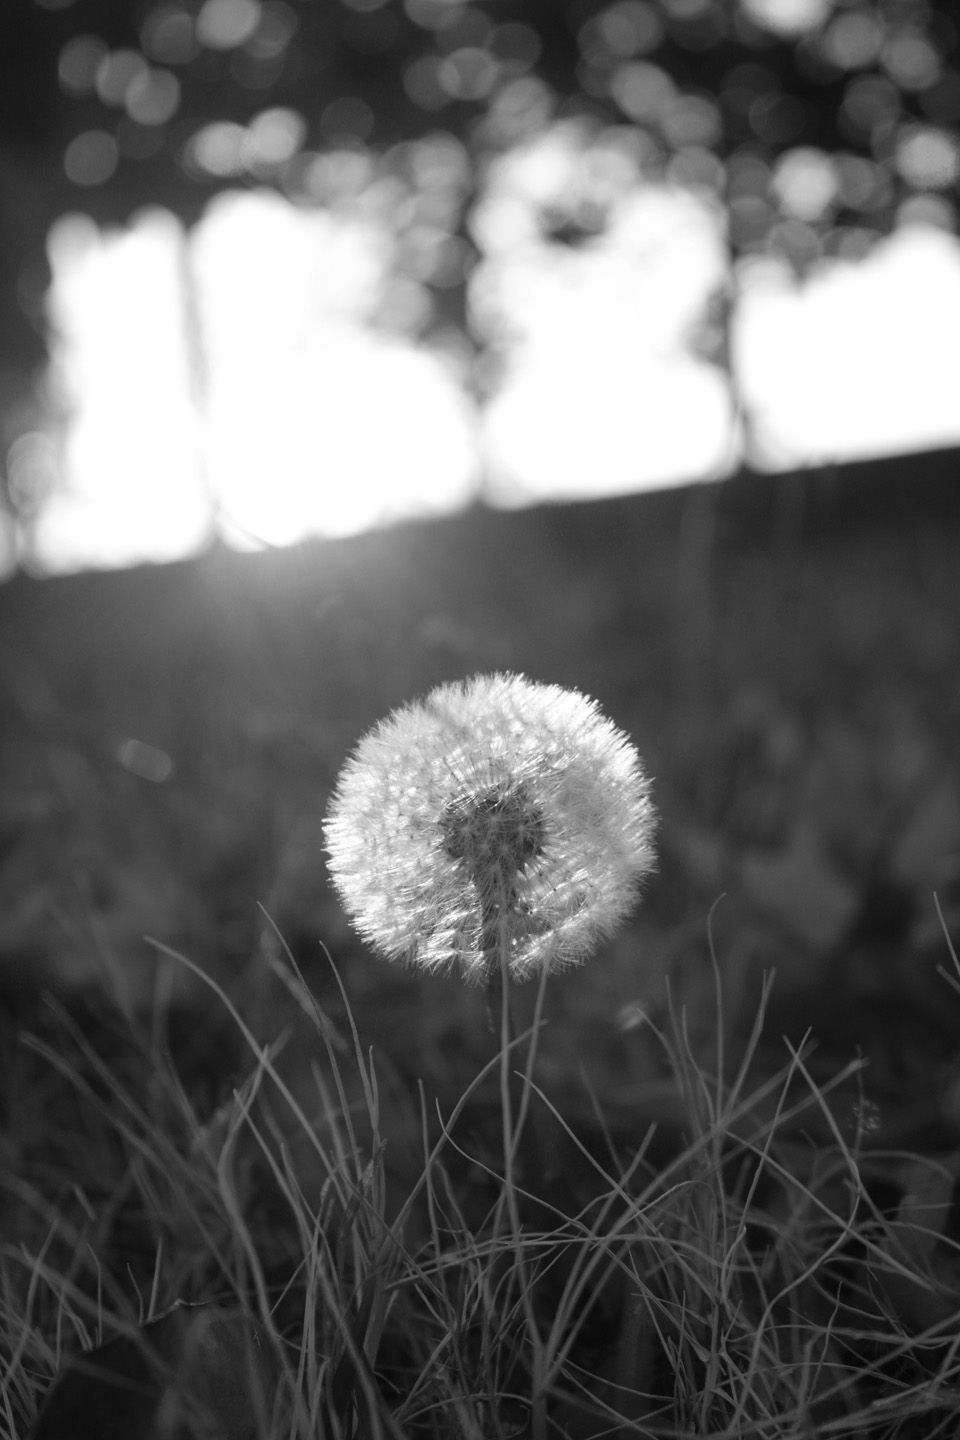 Exploring the world black and white photo assignments blow flowers dandelions weeds nature grass trees foreground pictures